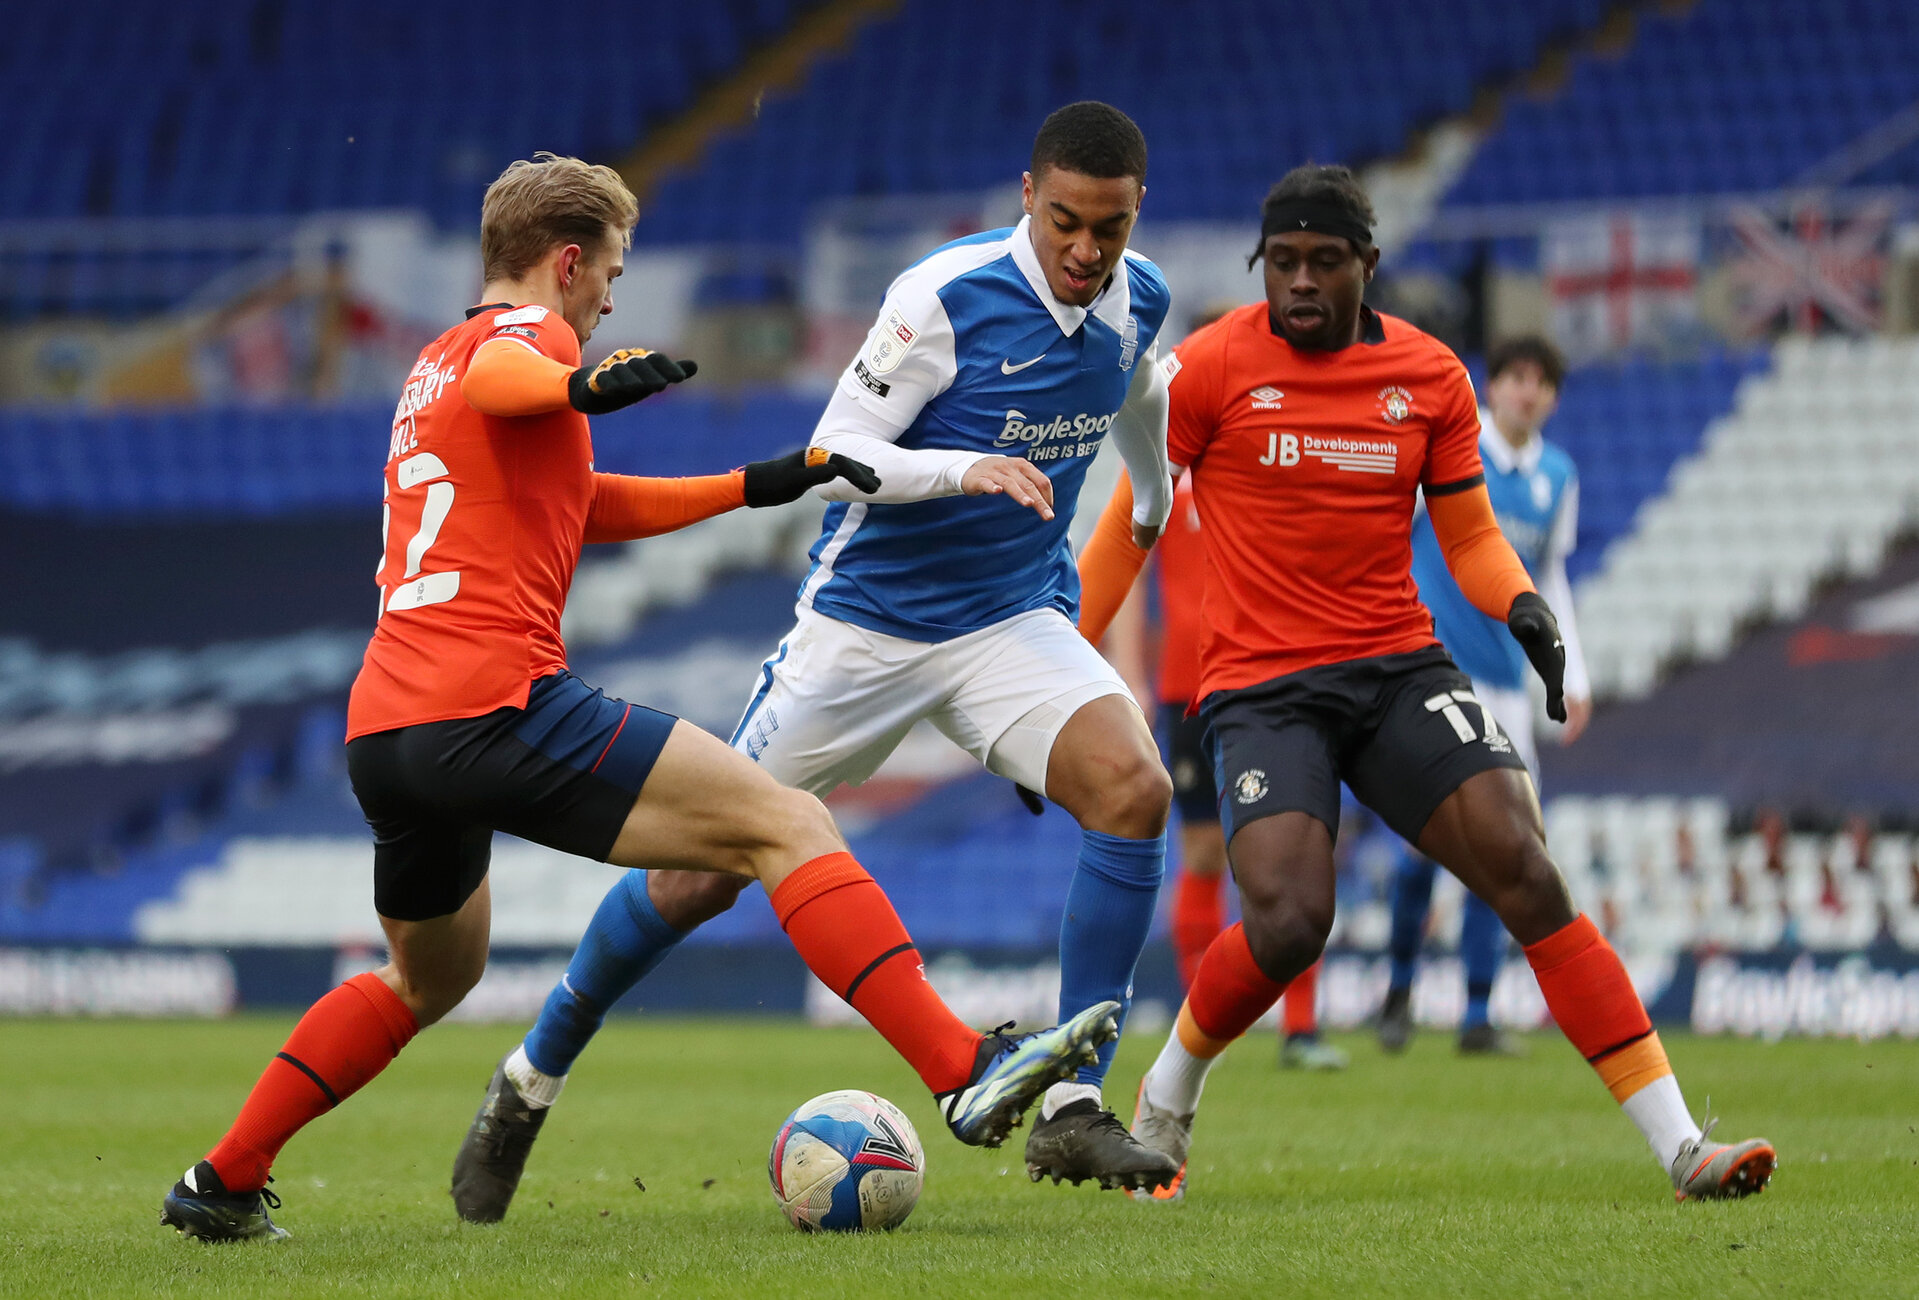 BIRMINGHAM, ENGLAND - FEBRUARY 13: Yan Valery of Birmingham City controls the ball as Kiernan Dewsbury-Hall of Luton Town and Pelly Ruddock of Luton Town look on during the Sky Bet Championship match between Birmingham City and Luton Town at St Andrew's Trillion Trophy Stadium on February 13, 2021 in Birmingham, England. Sporting stadiums around the UK remain under strict restrictions due to the Coronavirus Pandemic as Government social distancing laws prohibit fans inside venues resulting in games being played behind closed doors. (Photo by Naomi Baker/Getty Images)